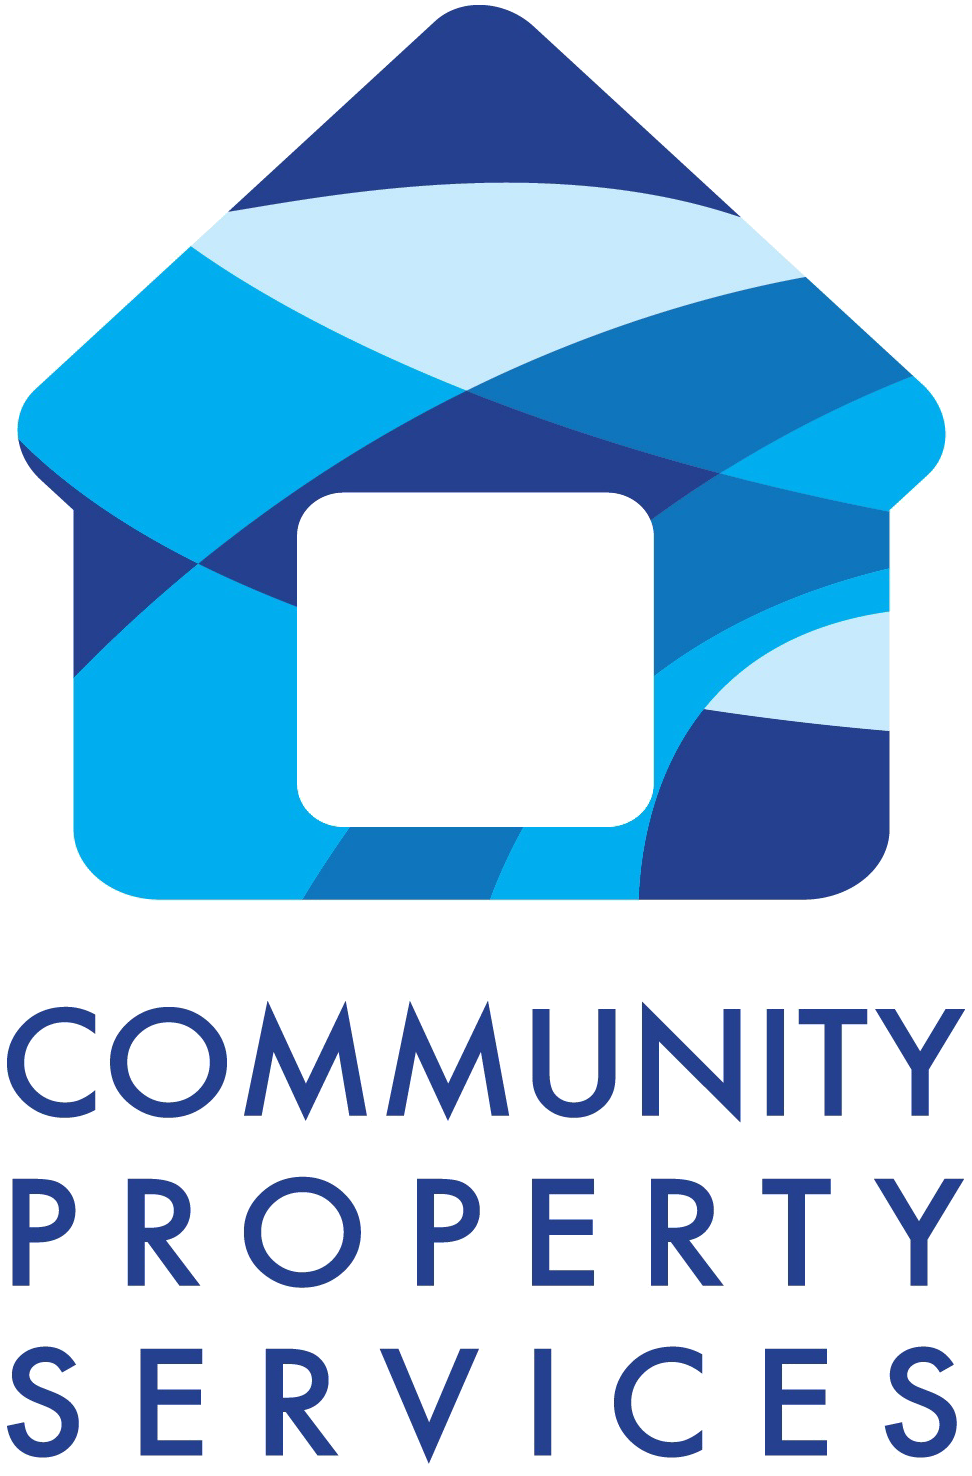 Community Property Services